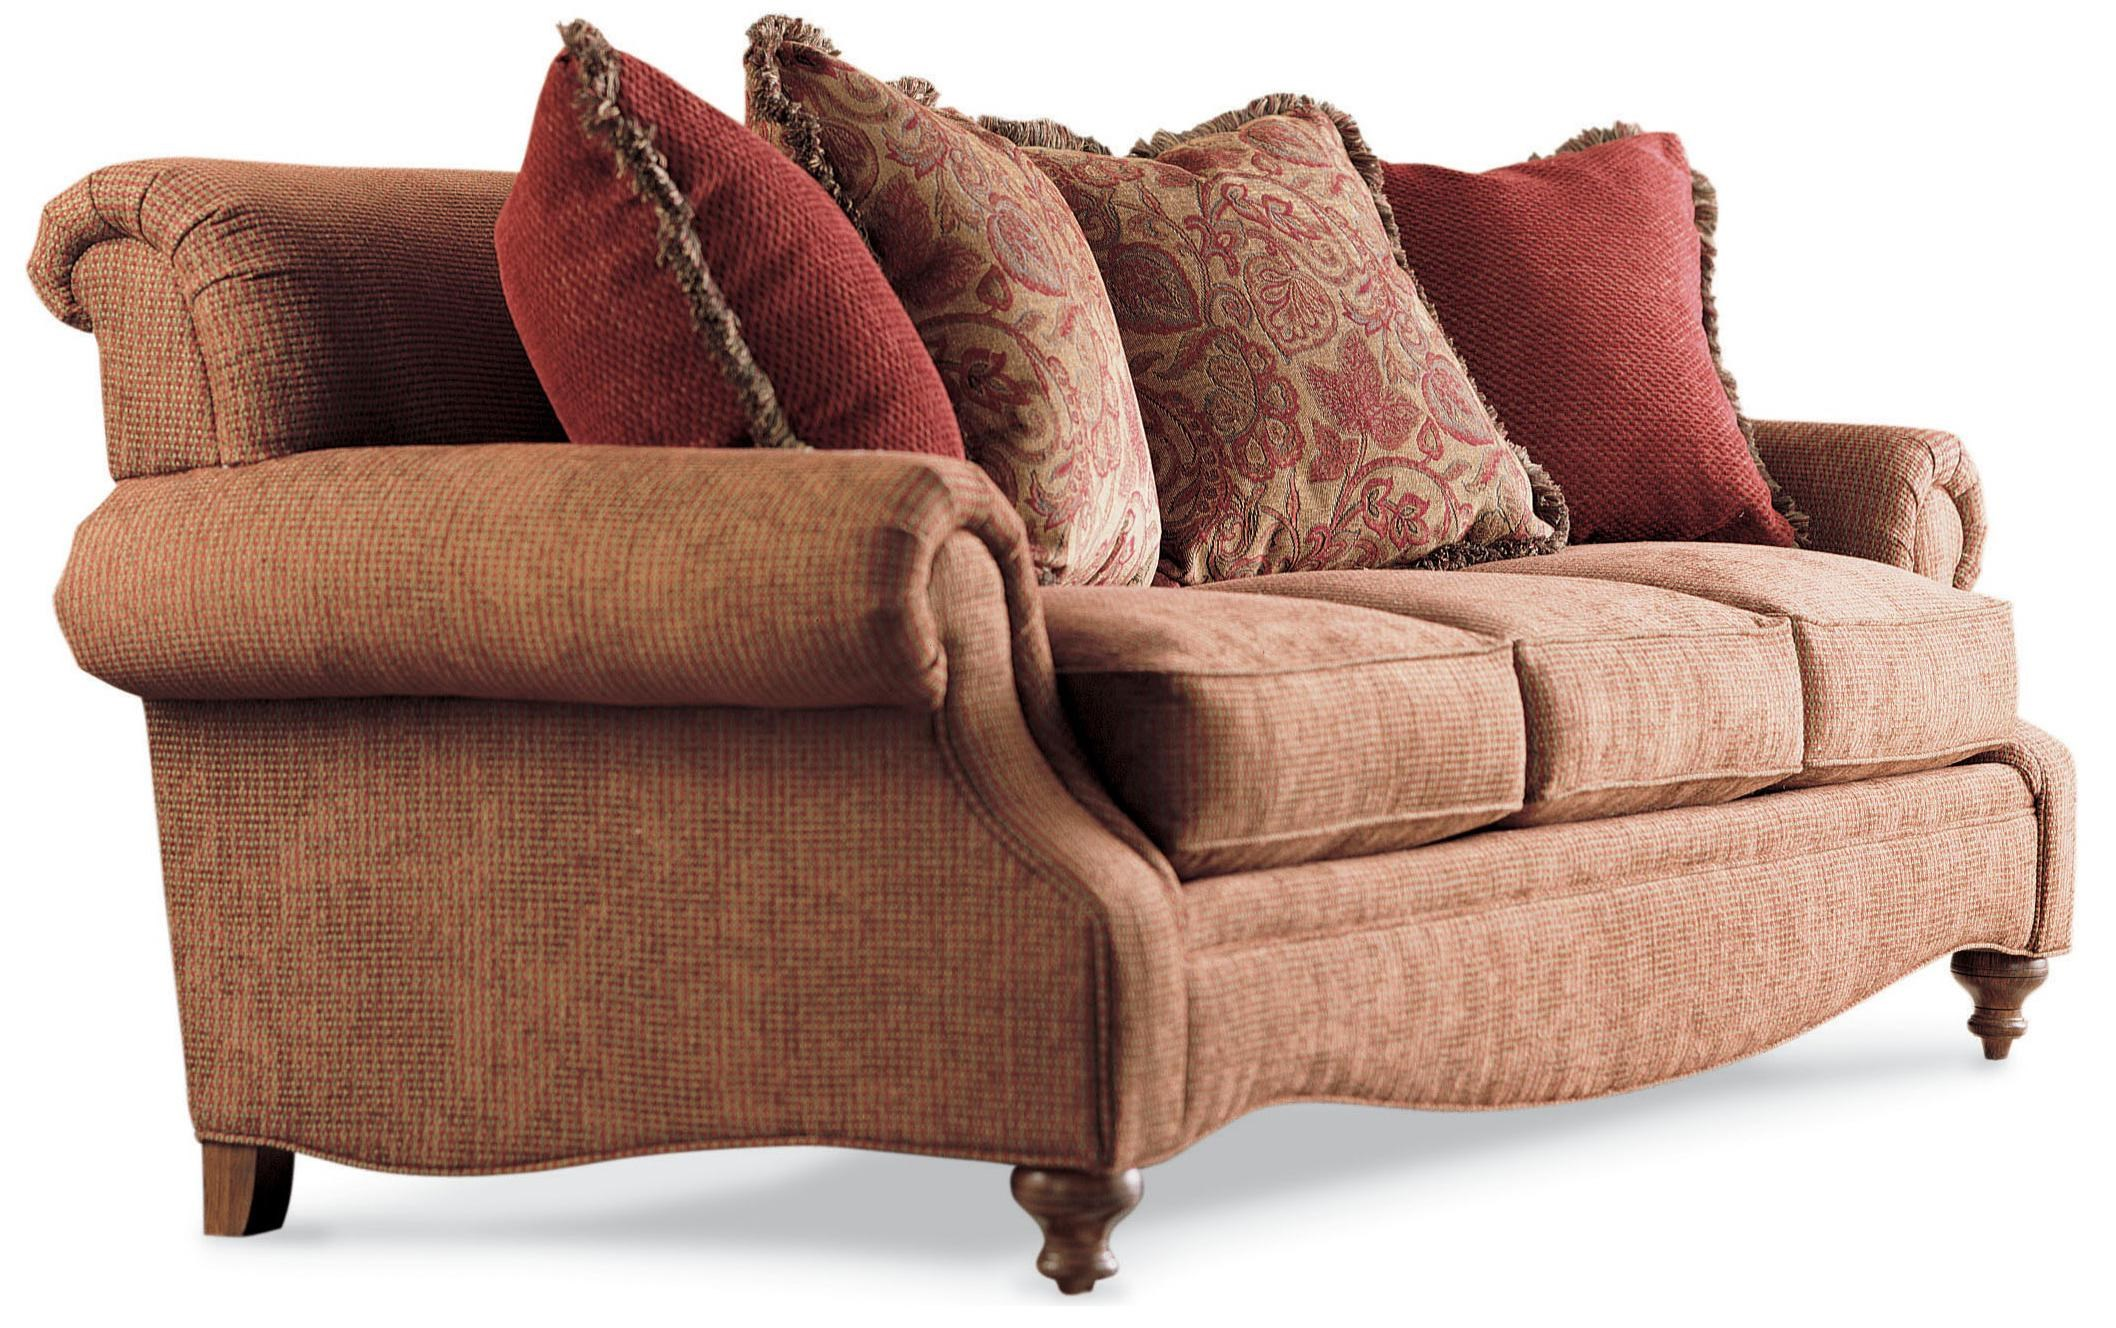 Drexel Drexel Heritage Upholstery Kerry Sofa W/ Rolled Back